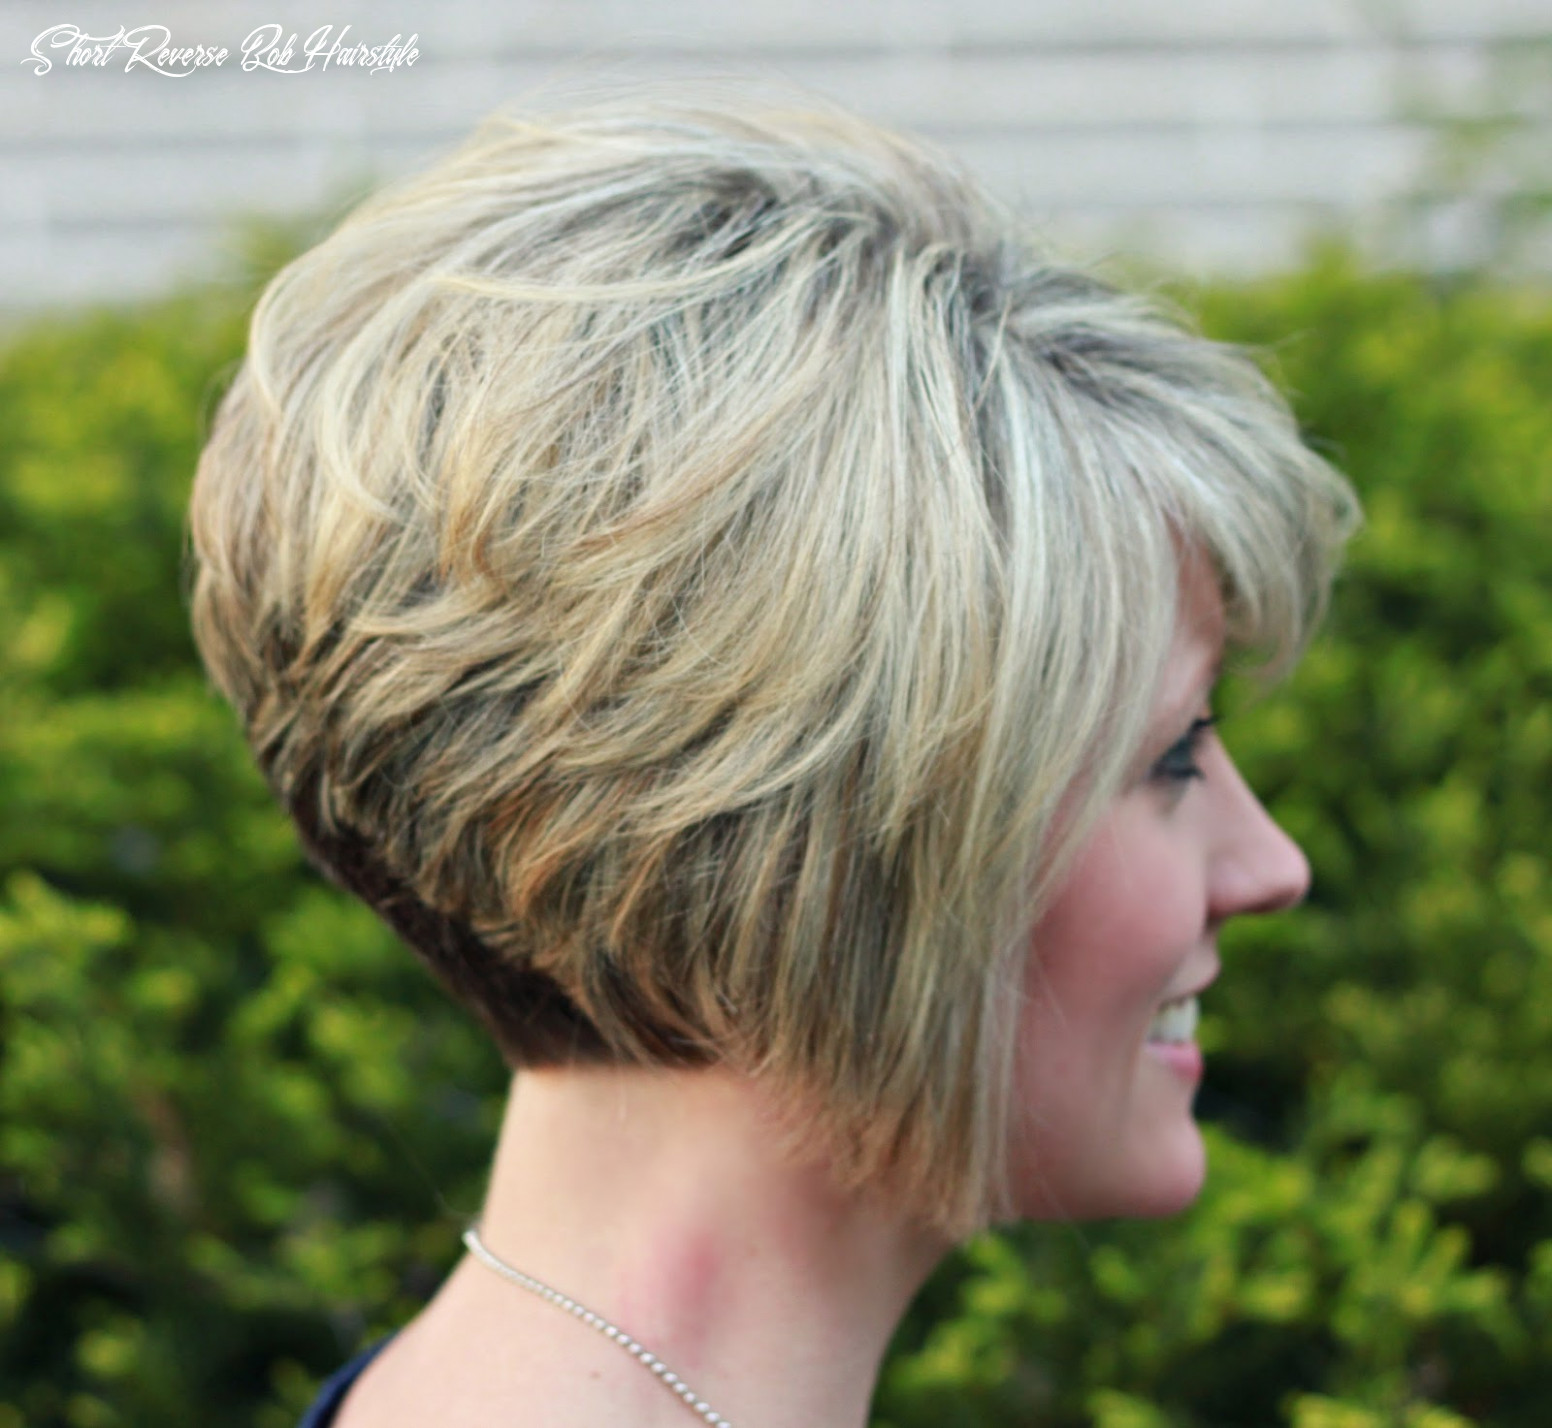 Famous inspiration 8 styling short inverted bobs short reverse bob hairstyle